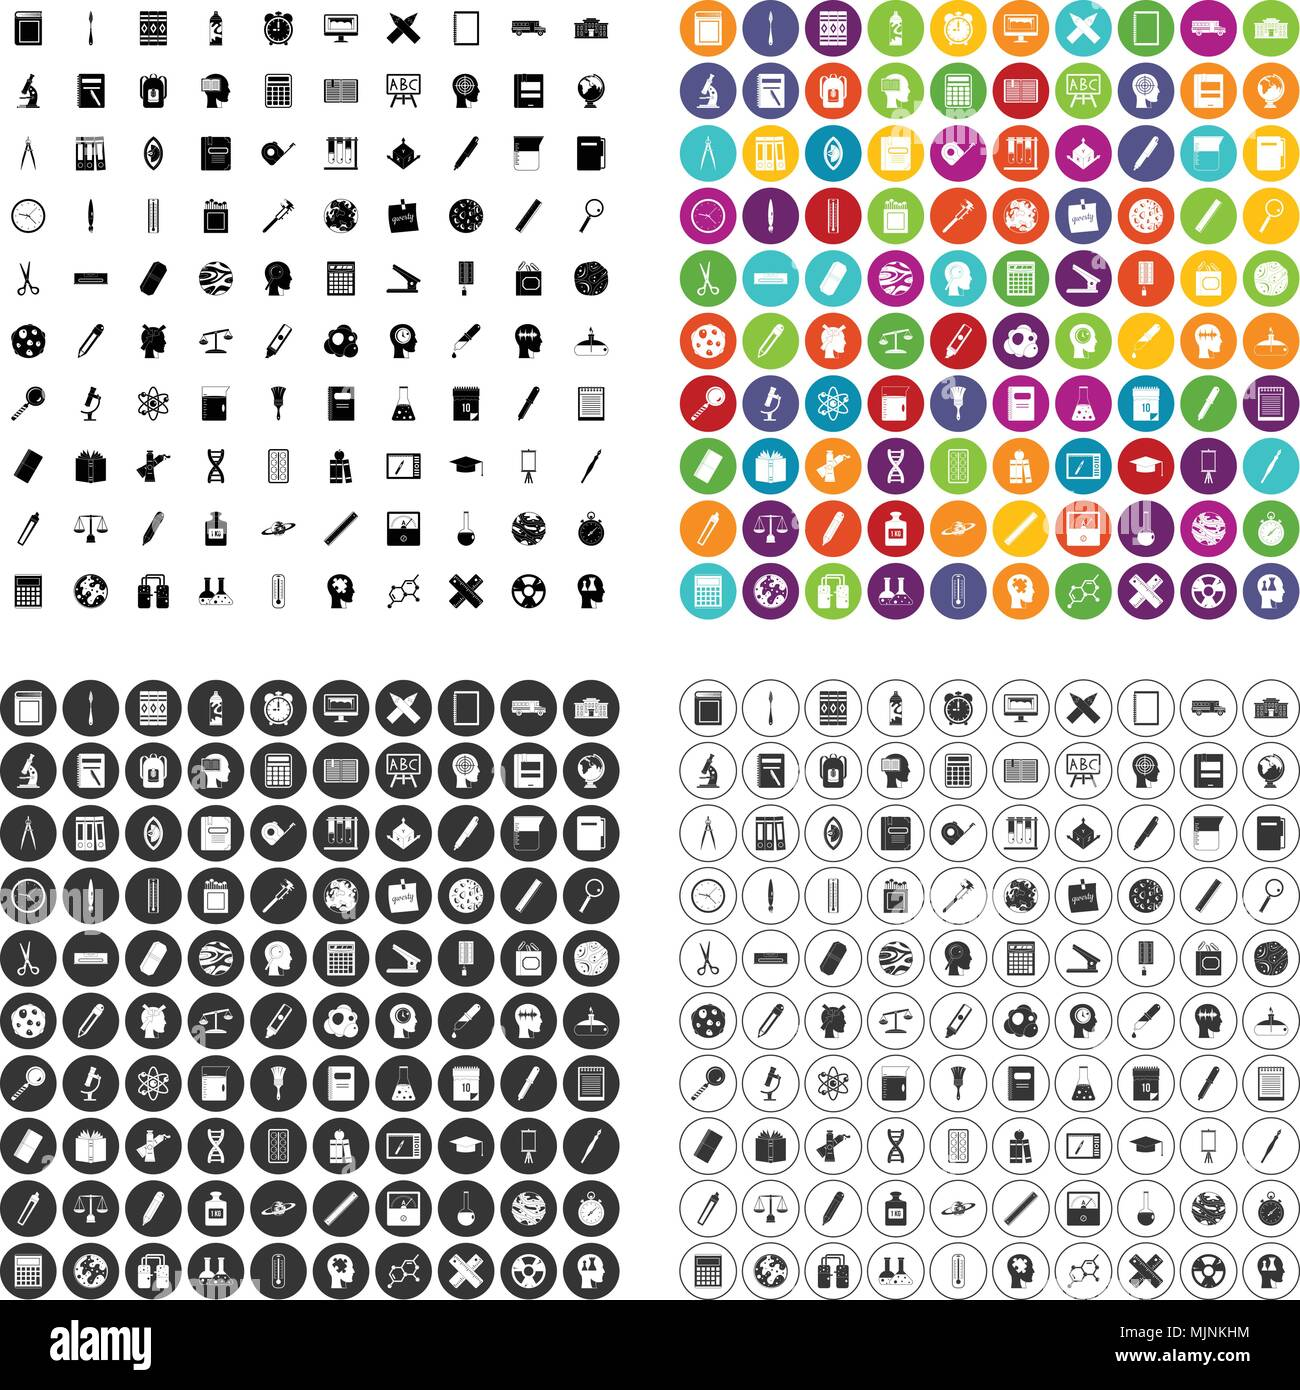 100 learning icons set vector variant - Stock Image